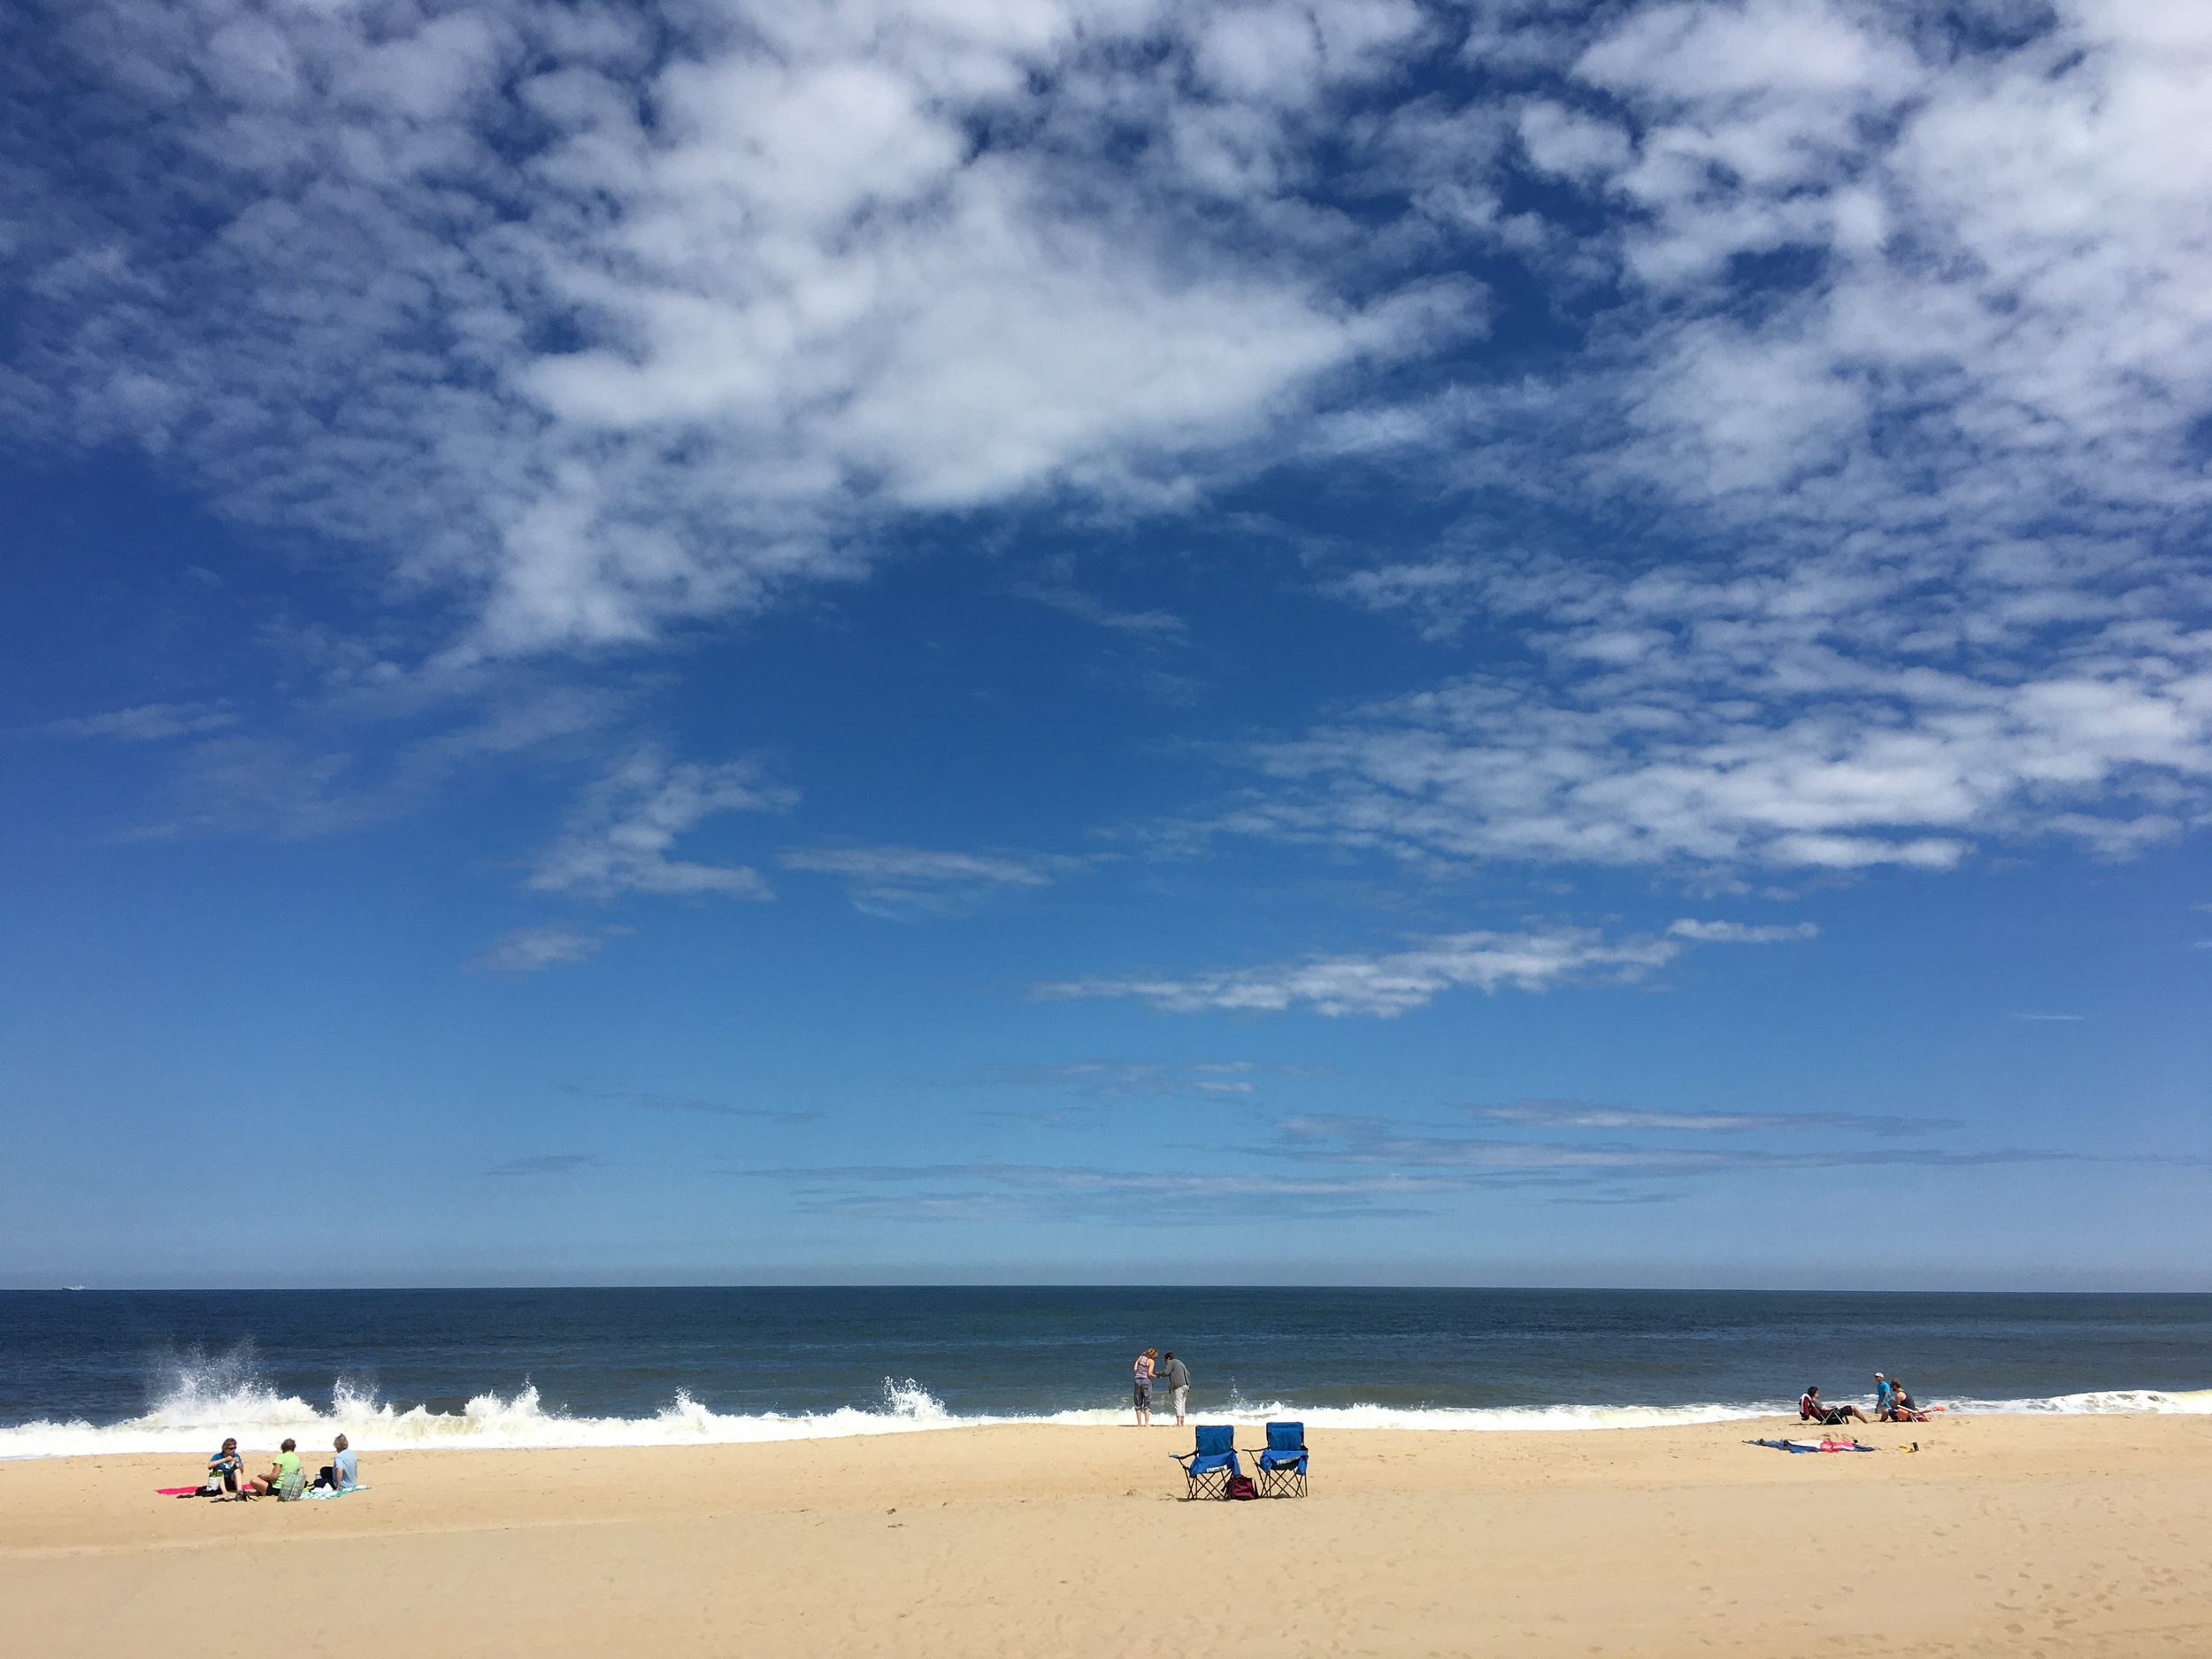 It was a cold, but sunny beach day in Rehoboth.